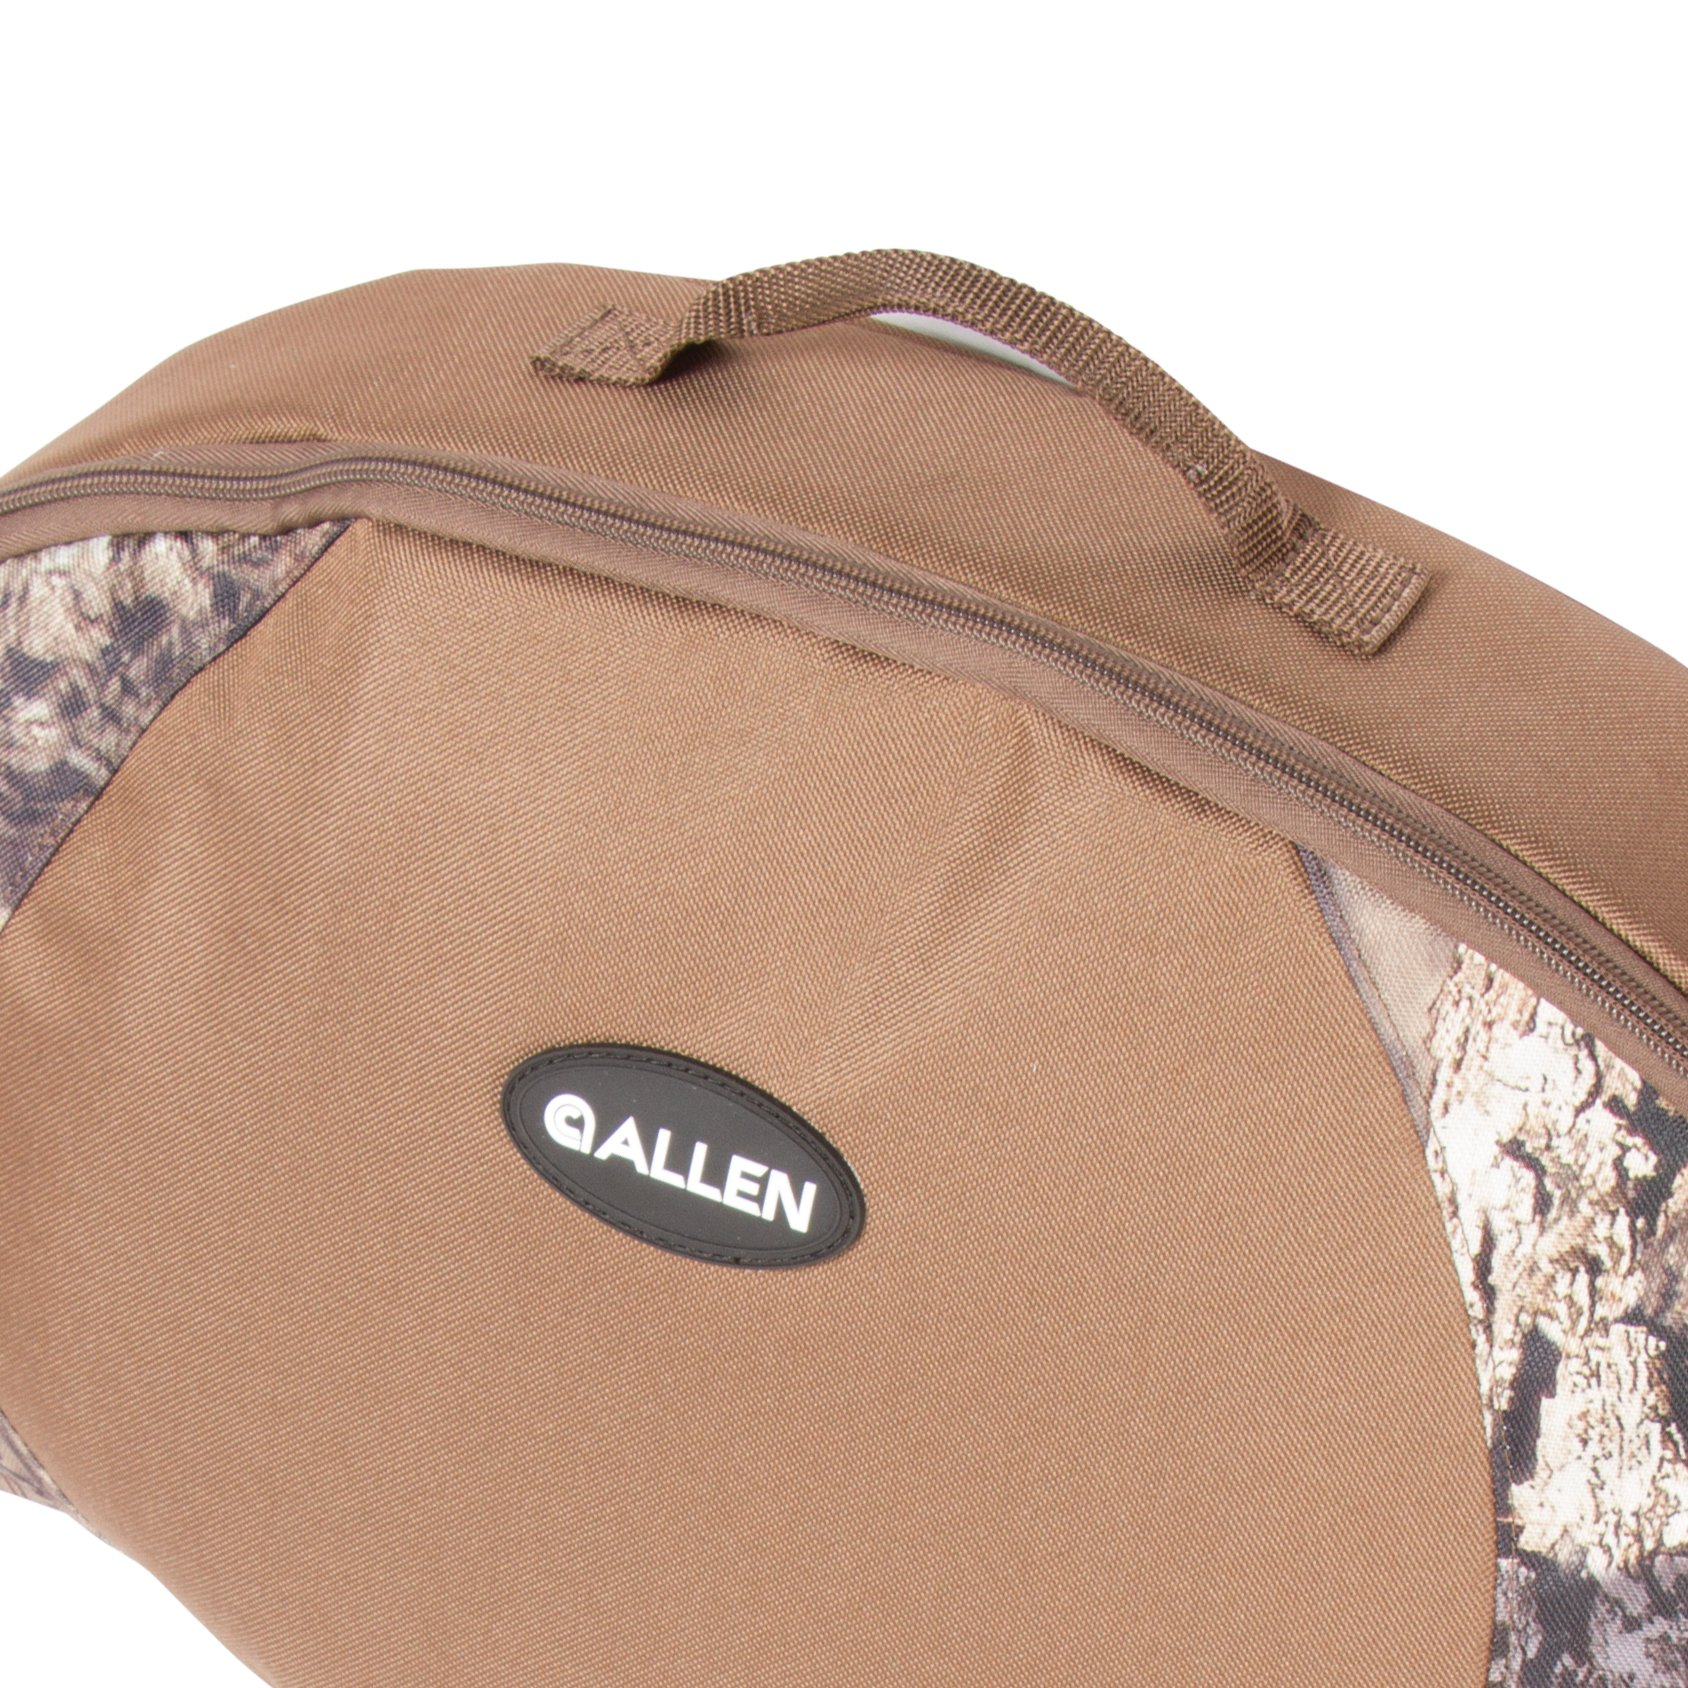 Allen Crossbow Soft Case, Mossy Oak Break-Up Country, 25'' x 38